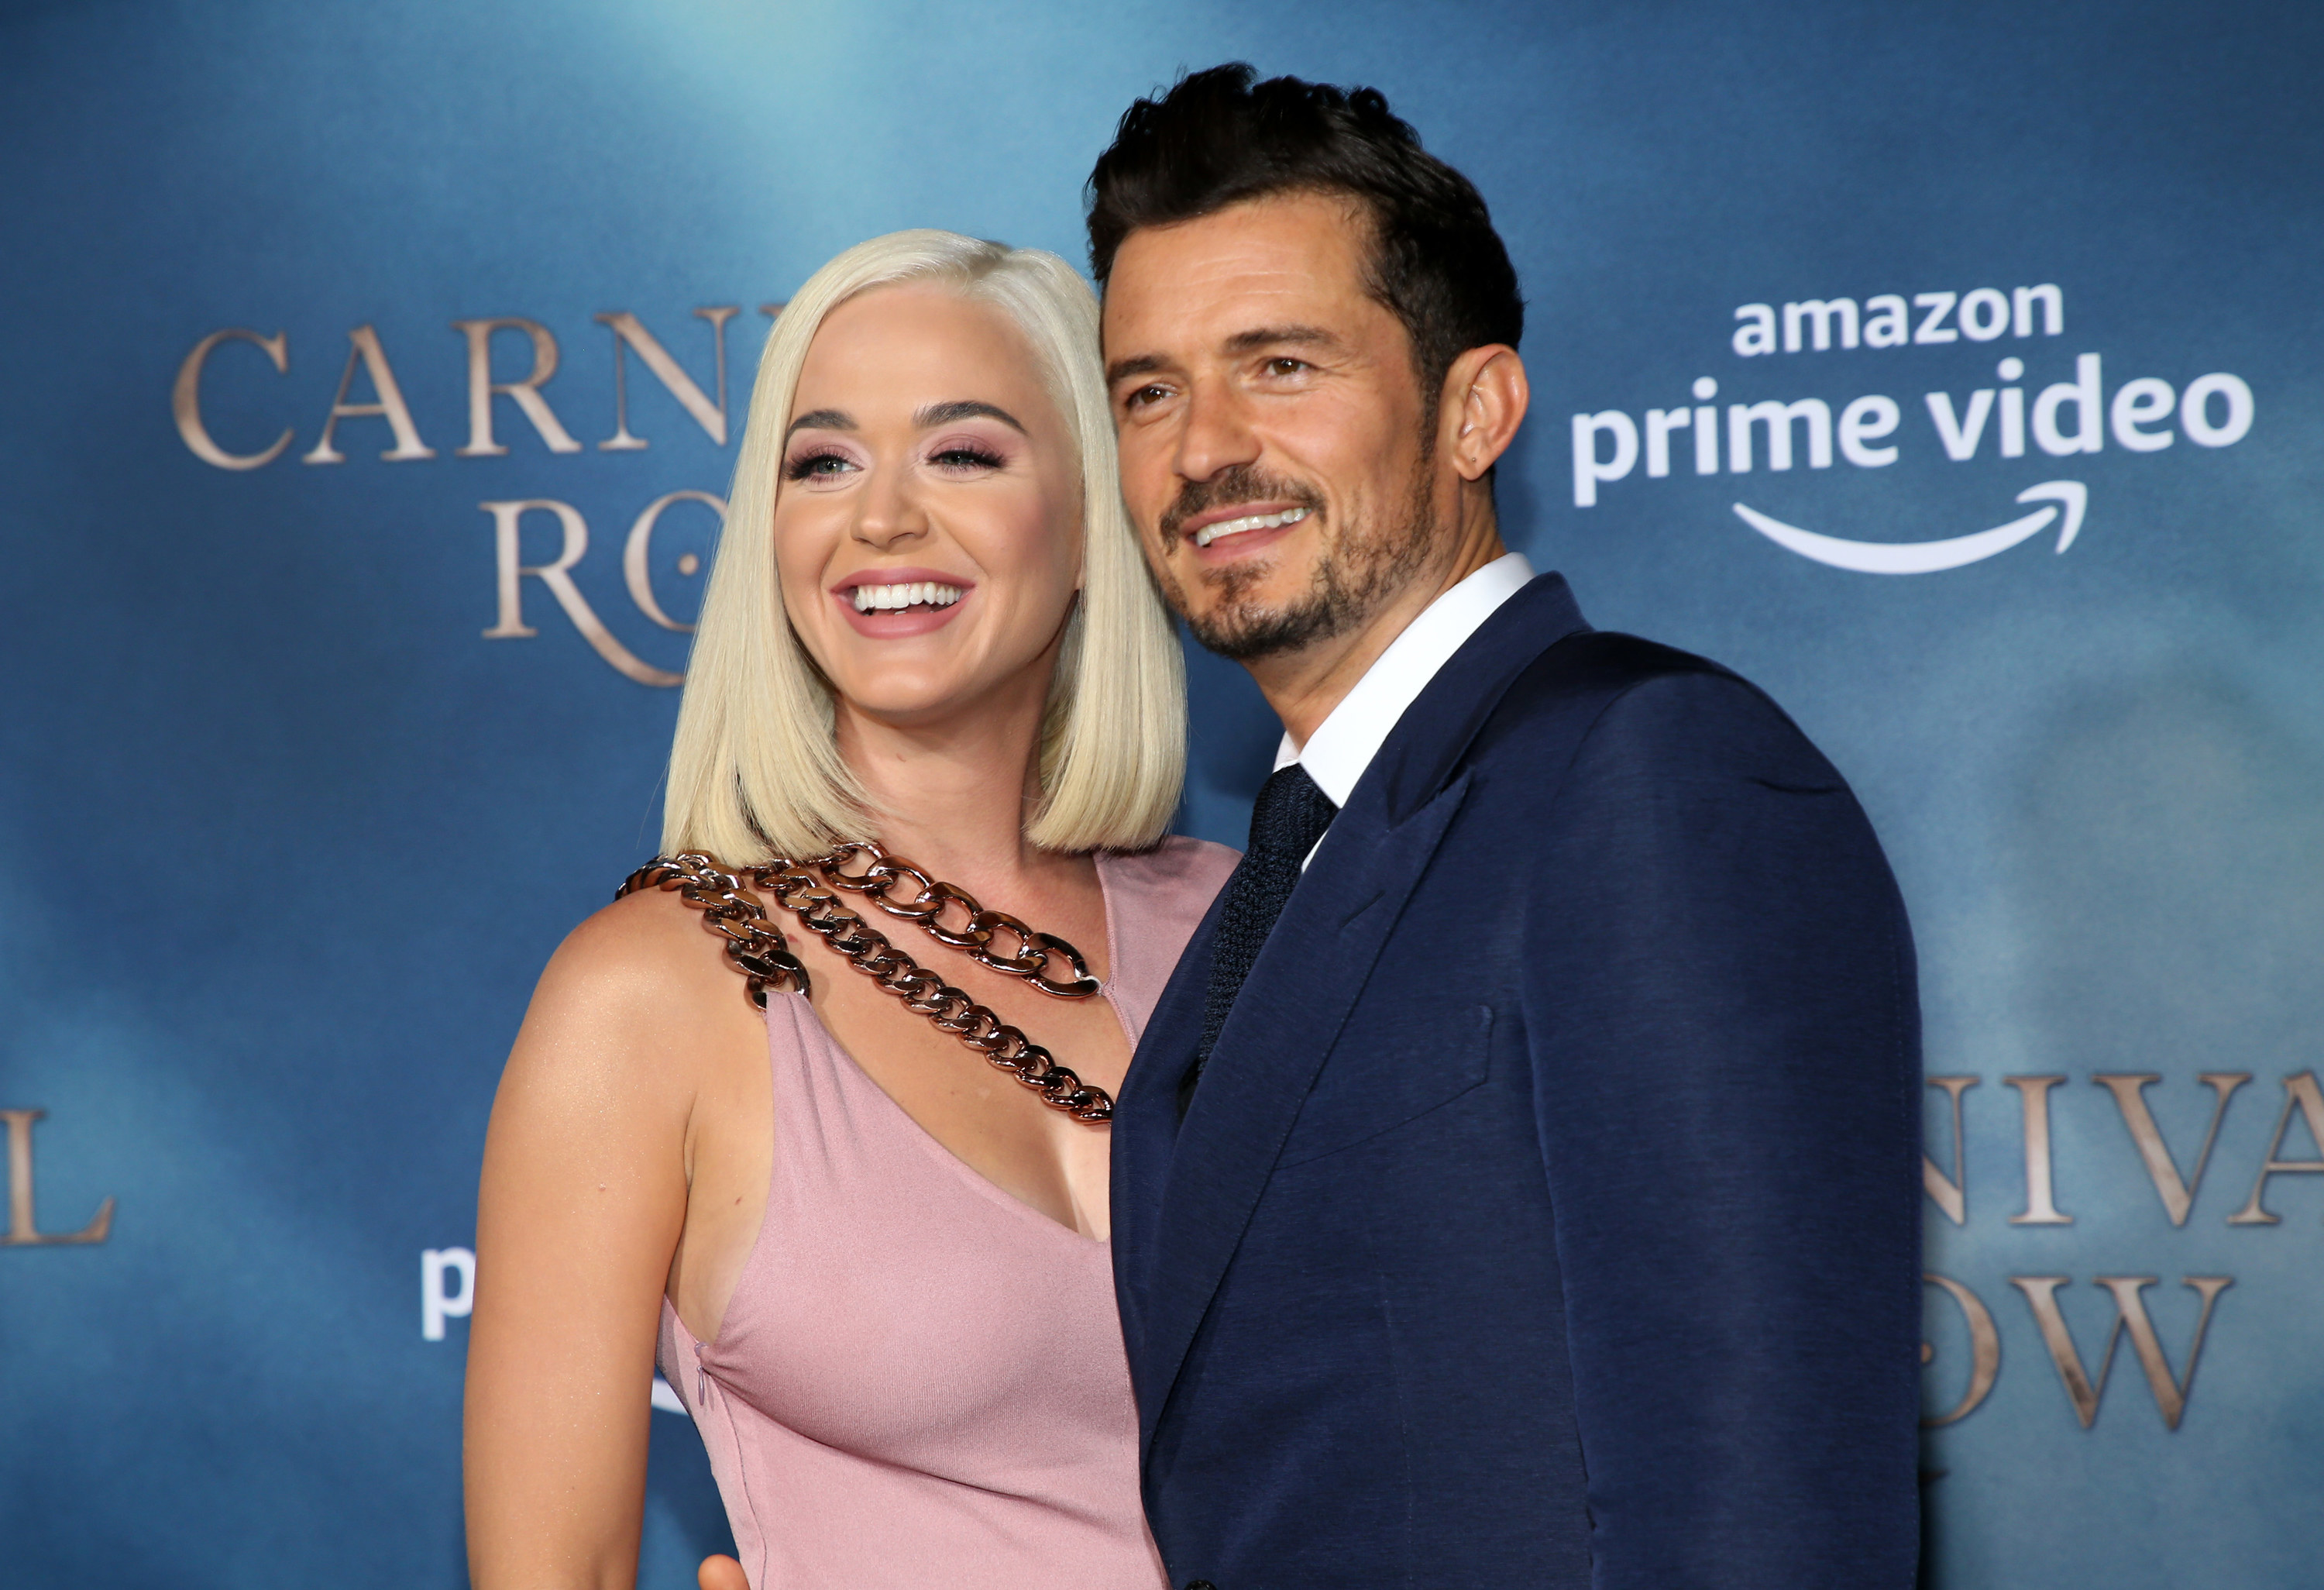 Katy and Orlando smile while posing on a red carpet